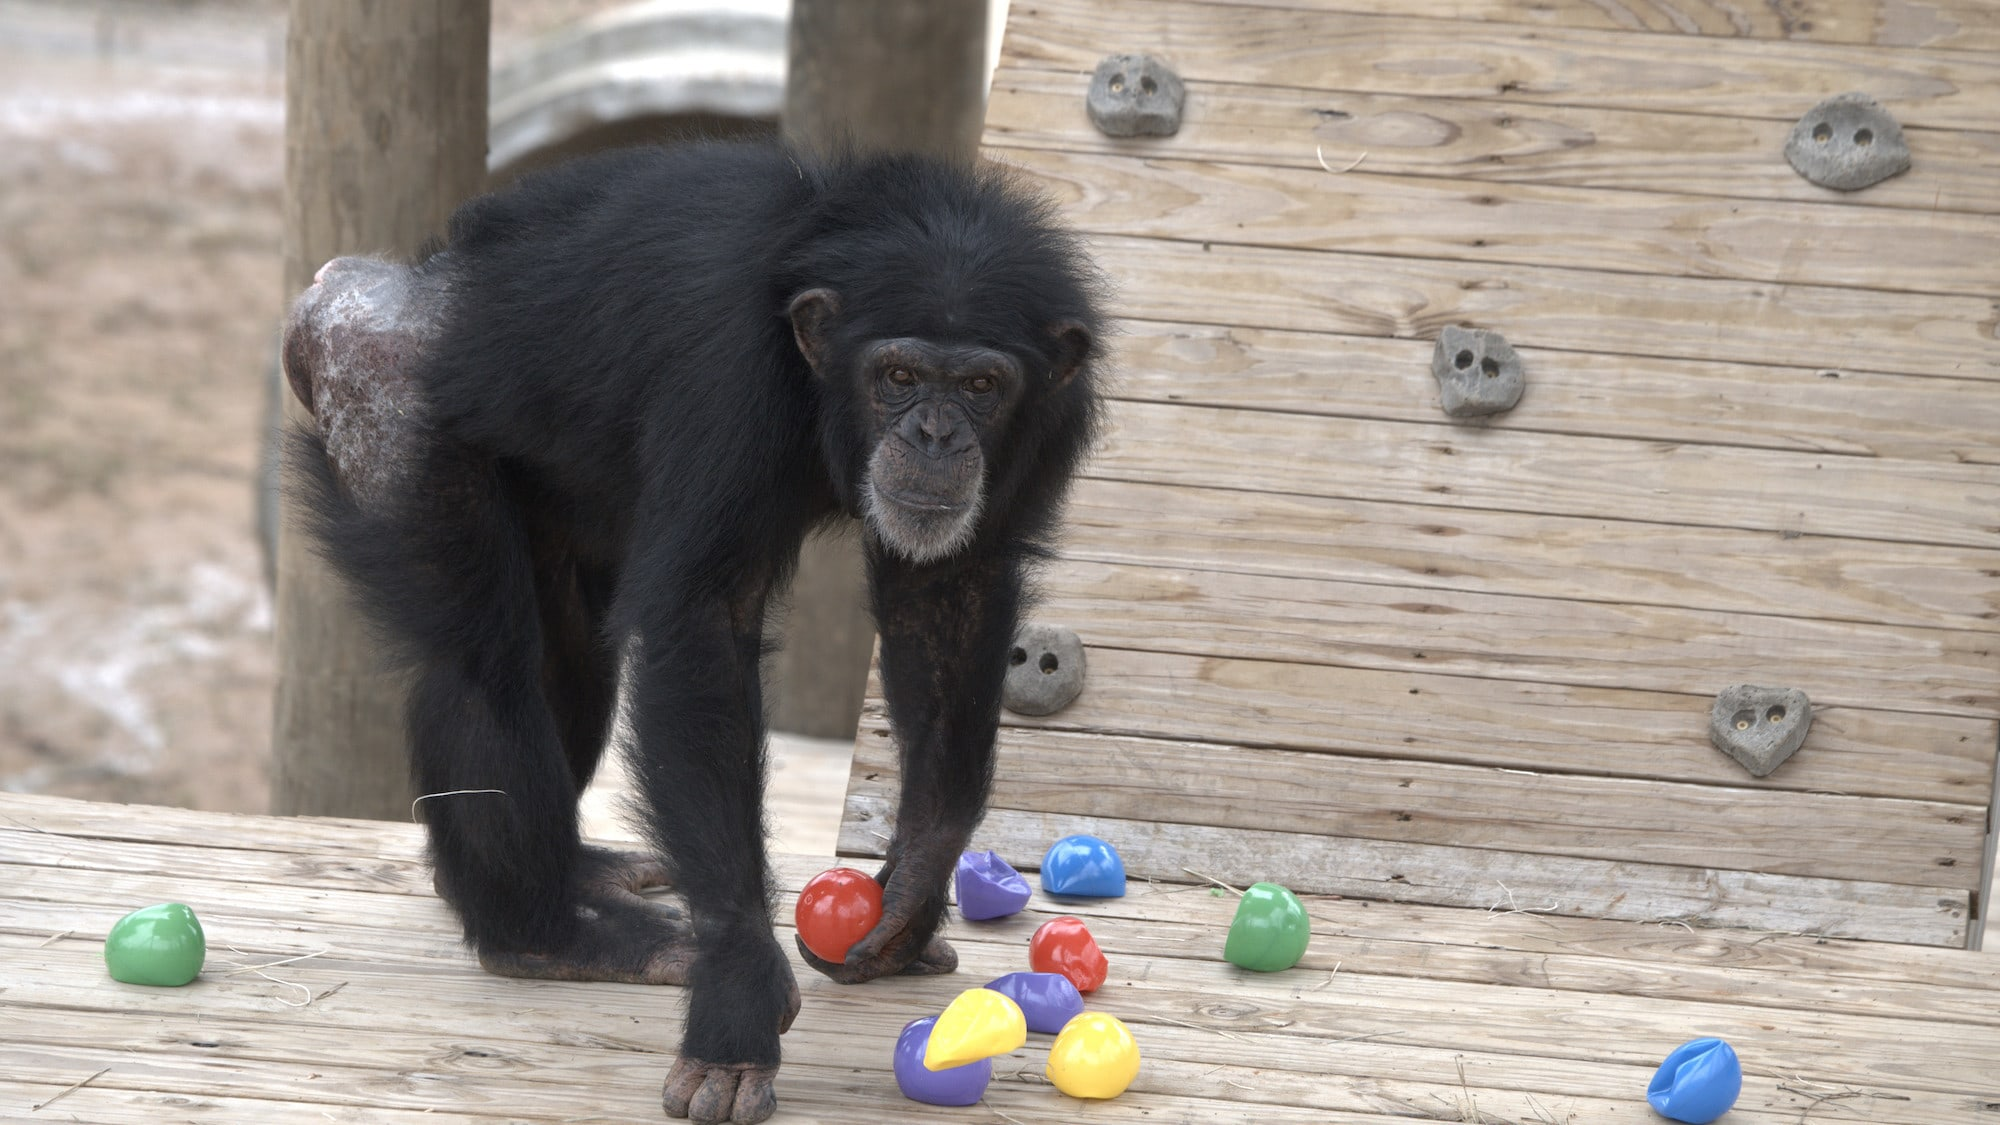 Onyx holding a red ball. Slims's group. (National Geographic/Virginia Quinn)